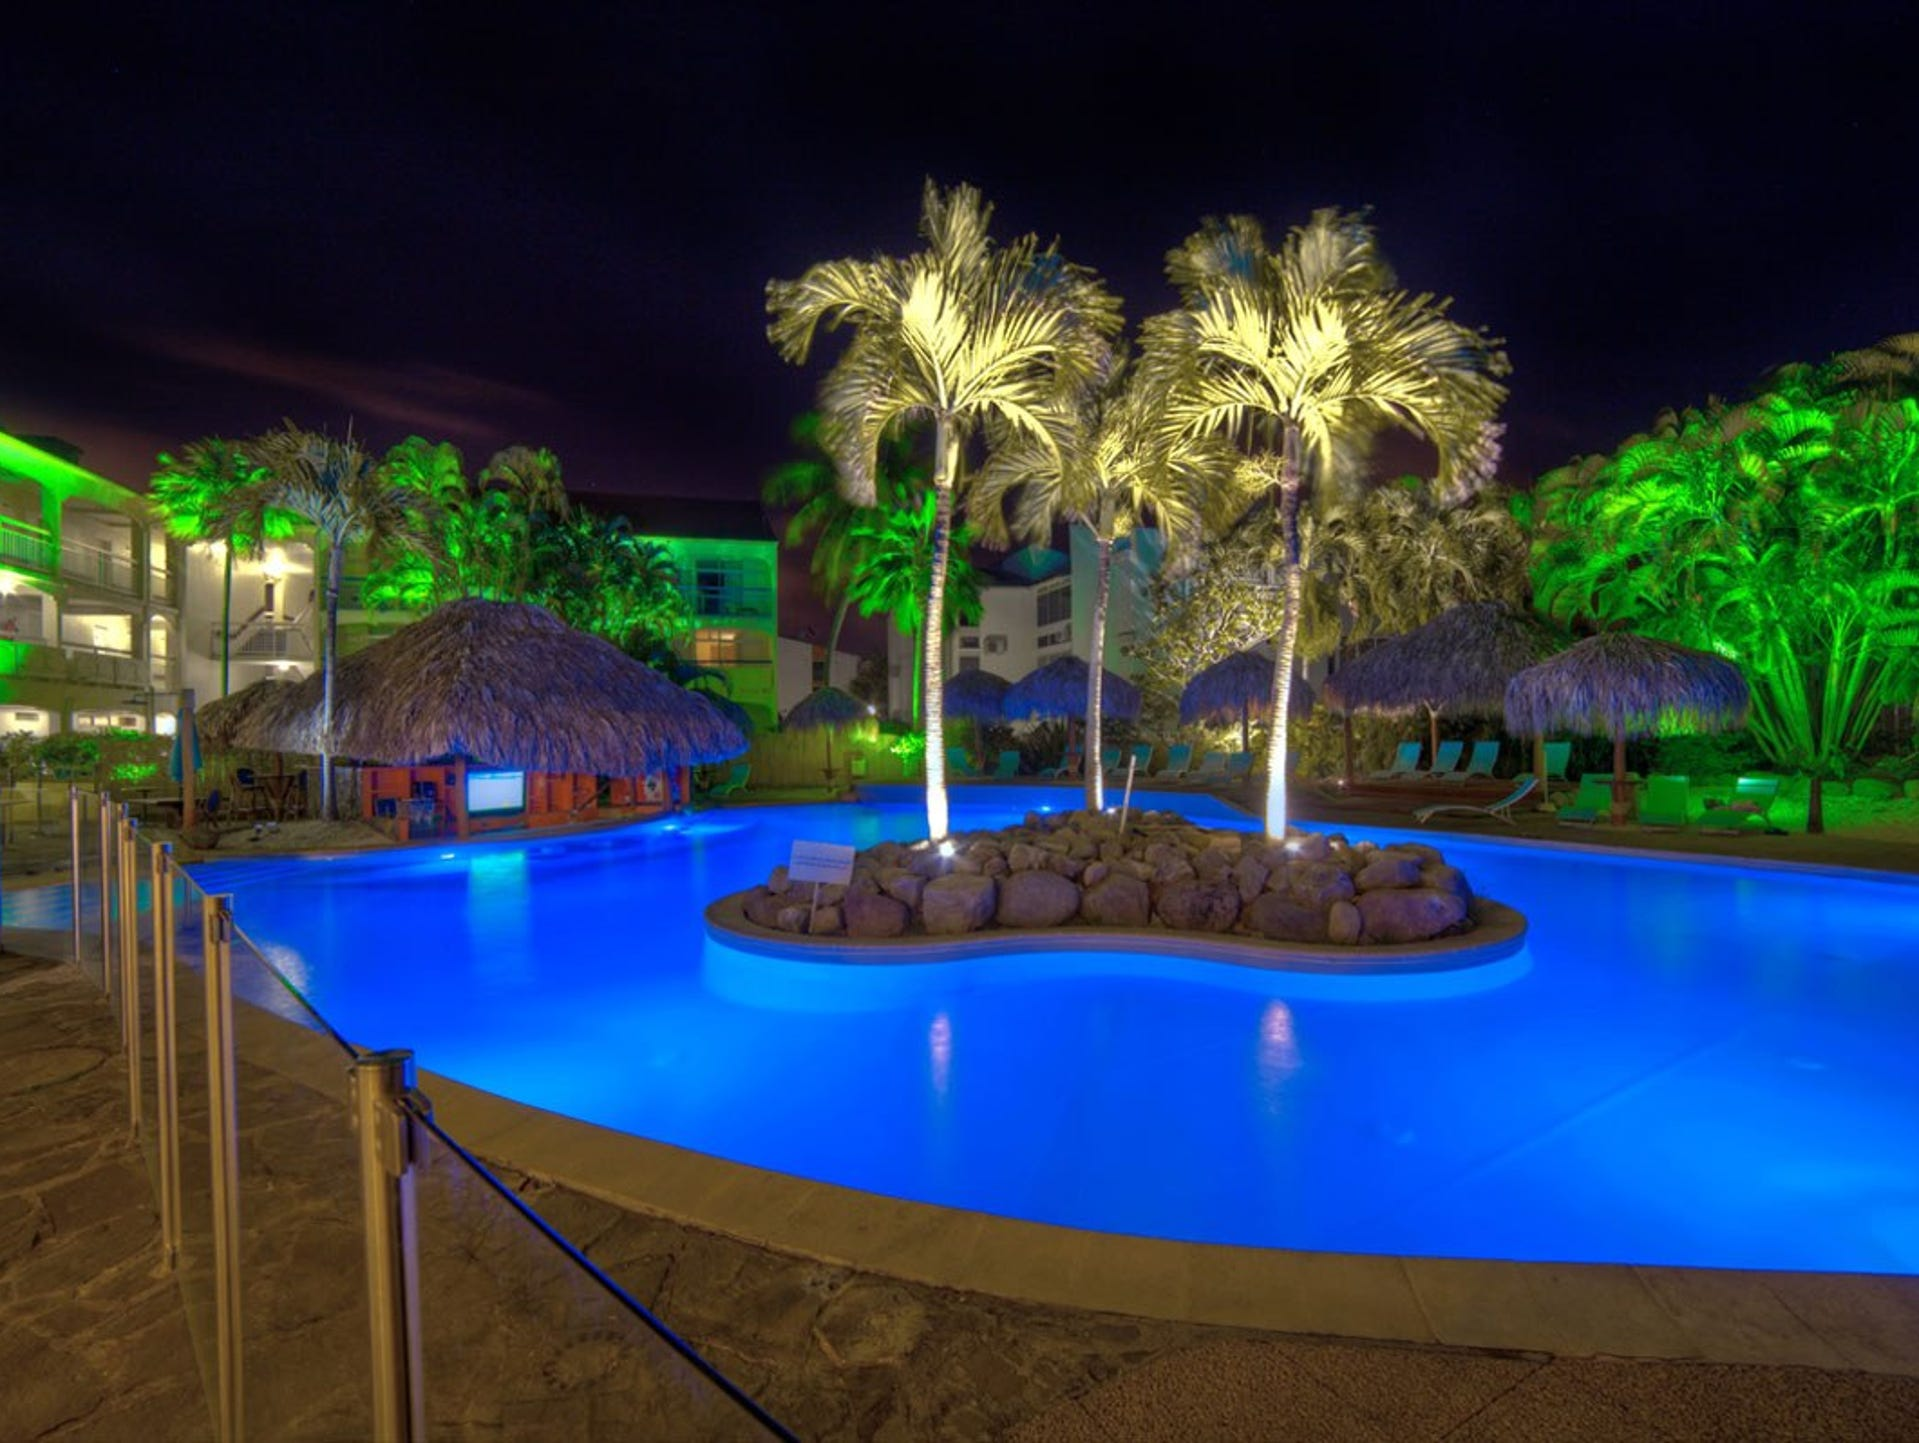 La Pagerie in Martinique has rates from $155 nightly